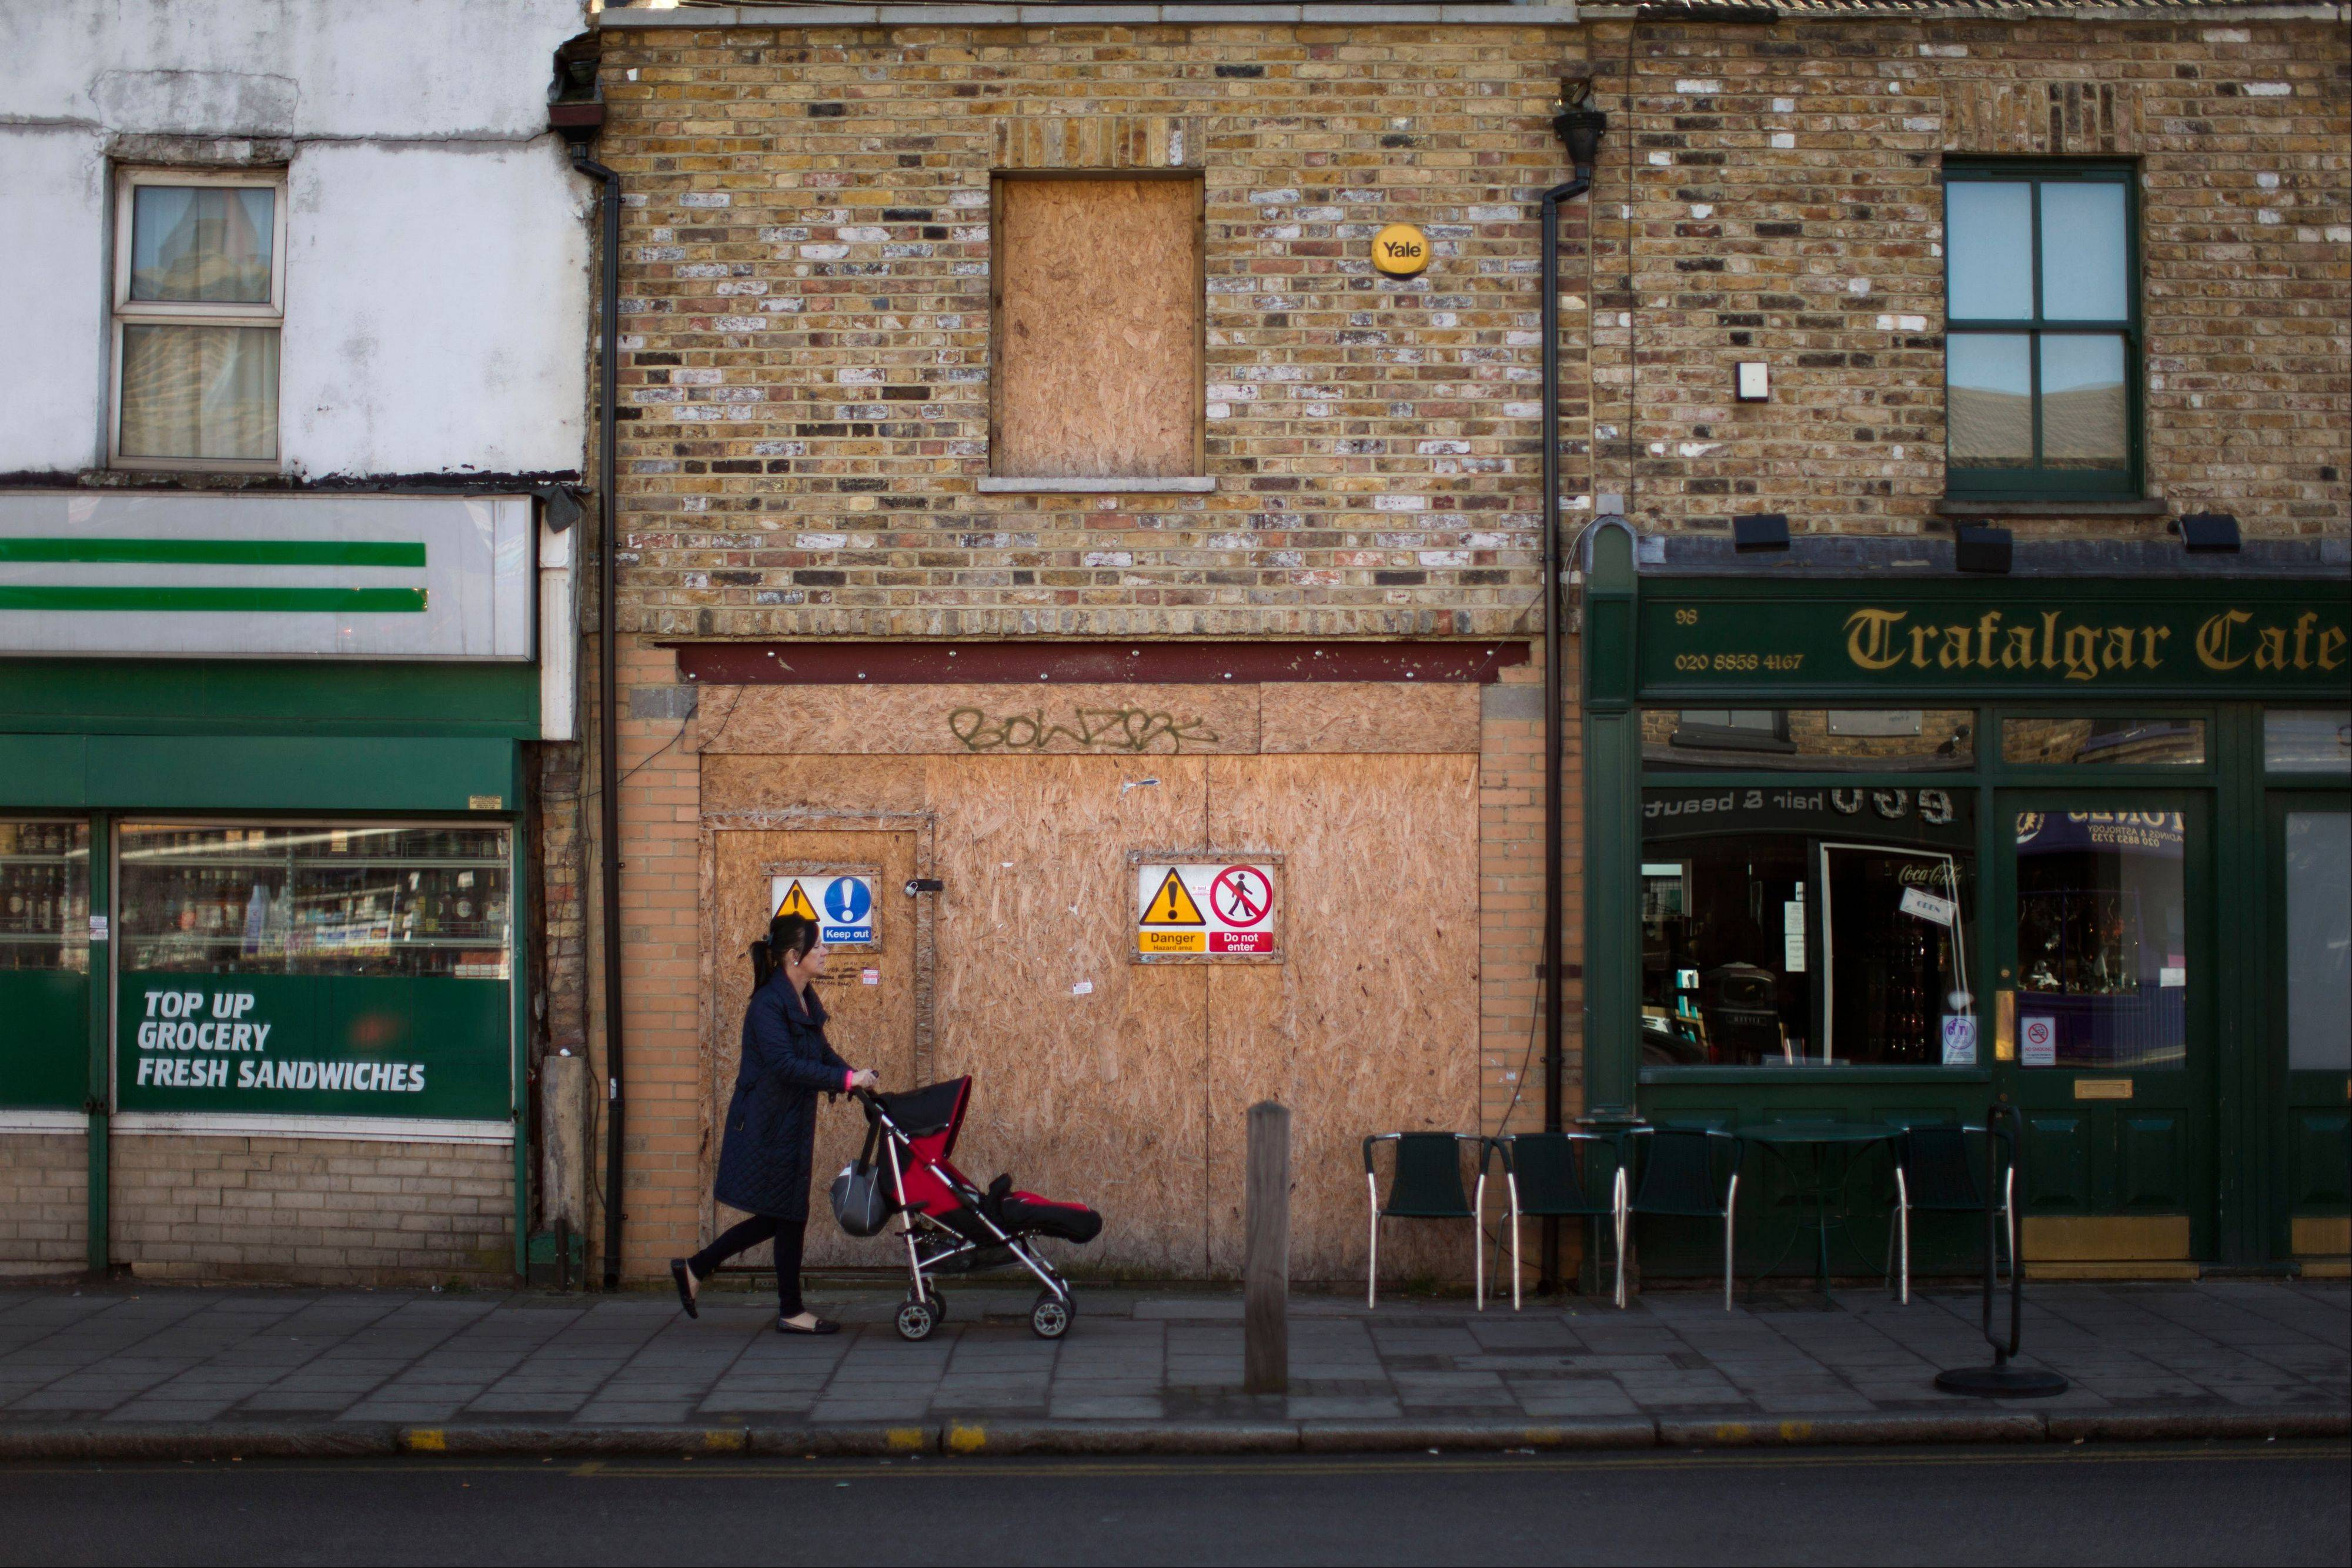 A woman pushes a child�s buggy past a boarded up shop front on Trafalgar Road in Greenwich, London.